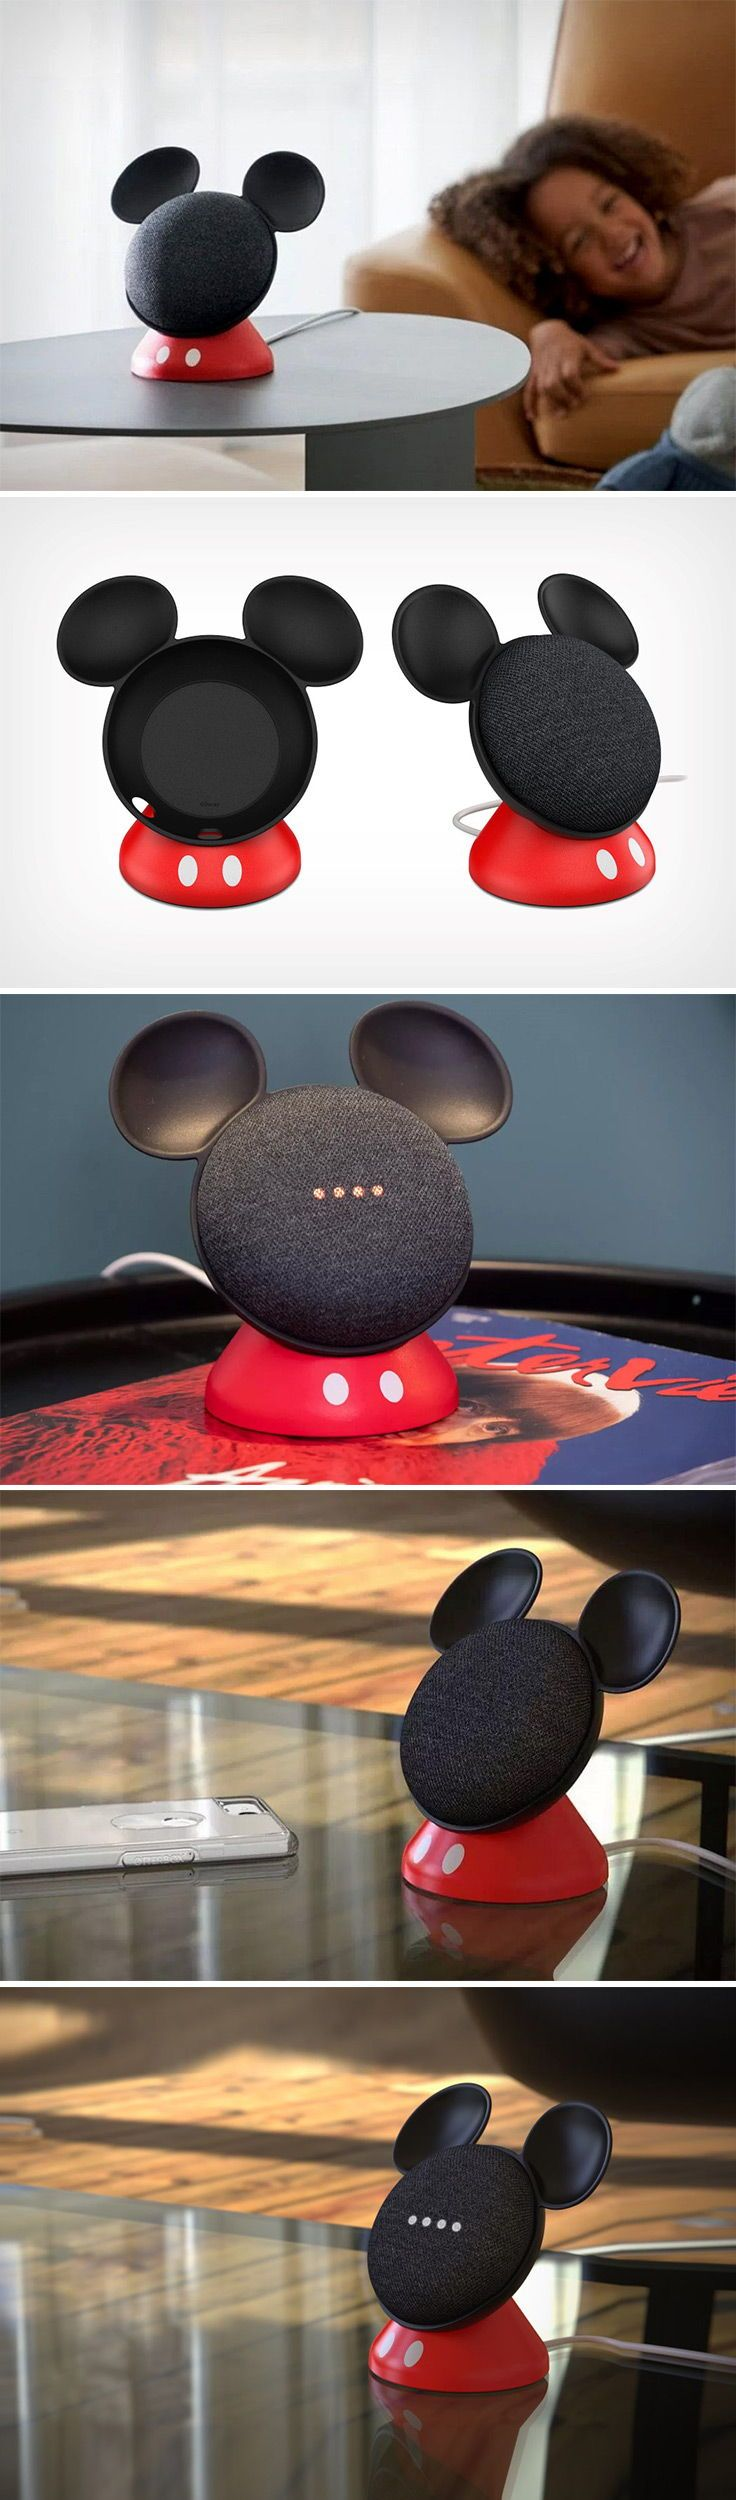 size 40 5f5bb e0a5b Partnering with Disney to make a mount for the Google Home Mini, the ...